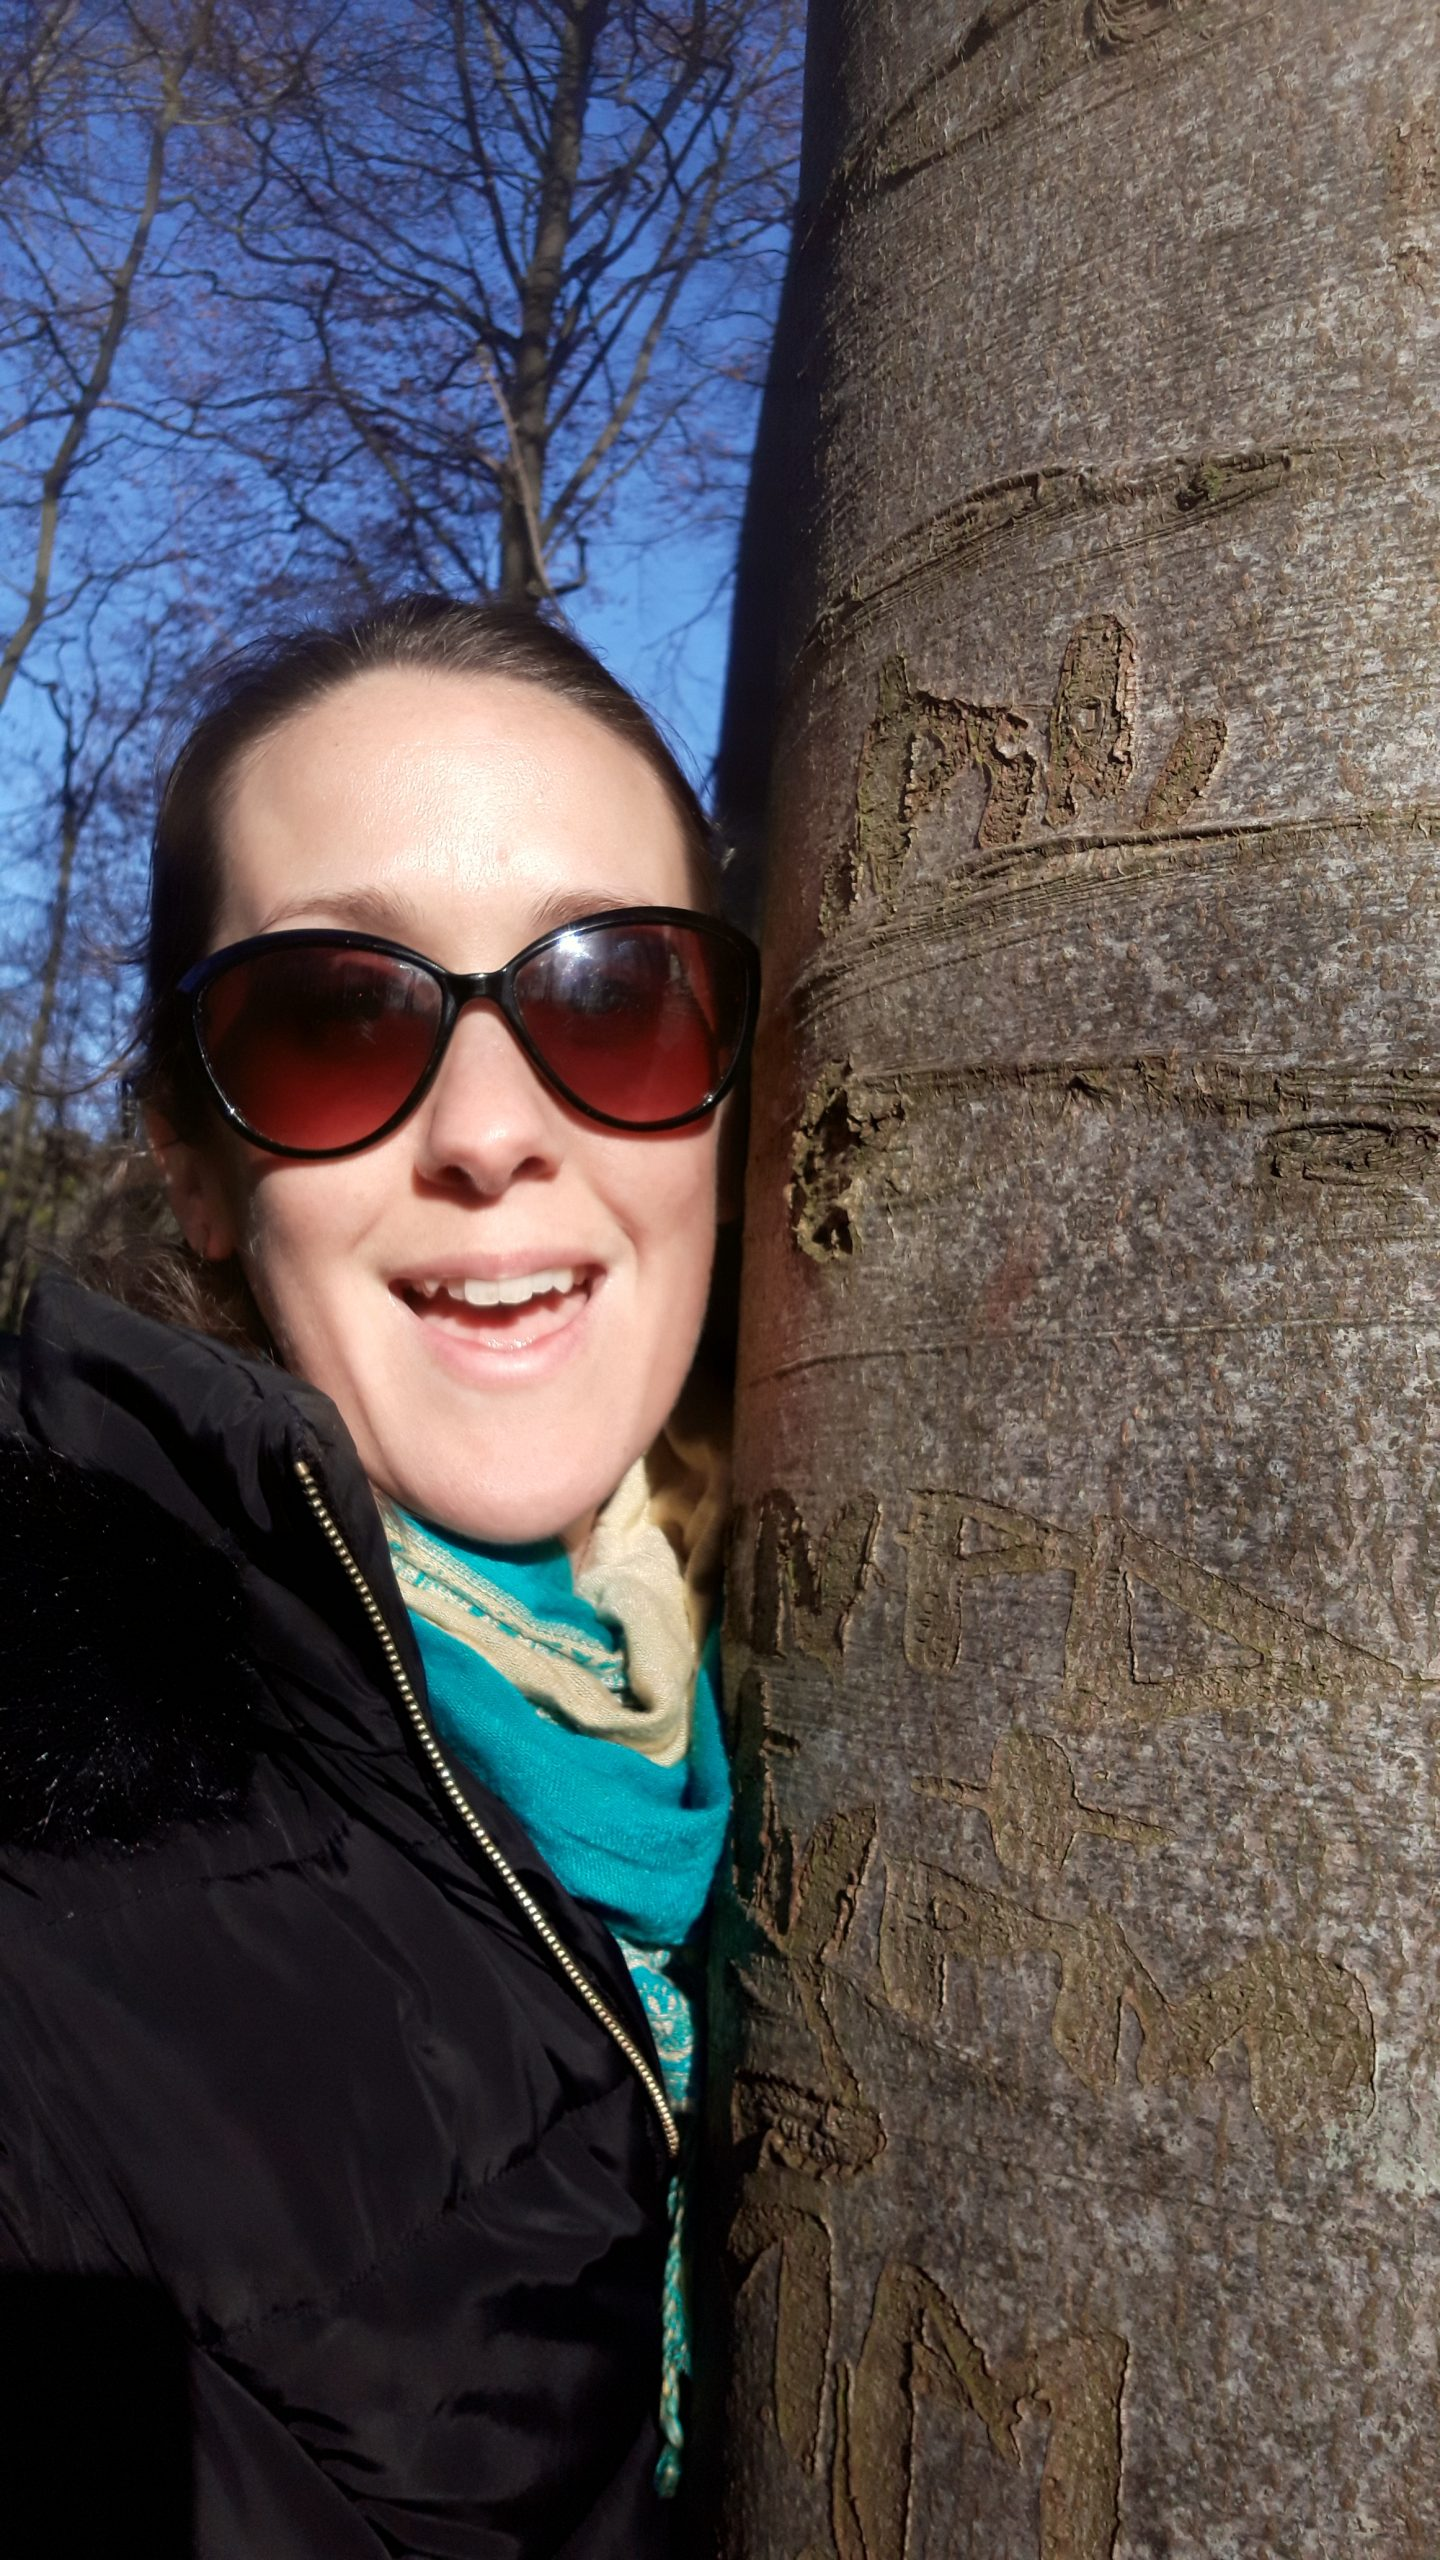 Hugging trees to increase oxytocin